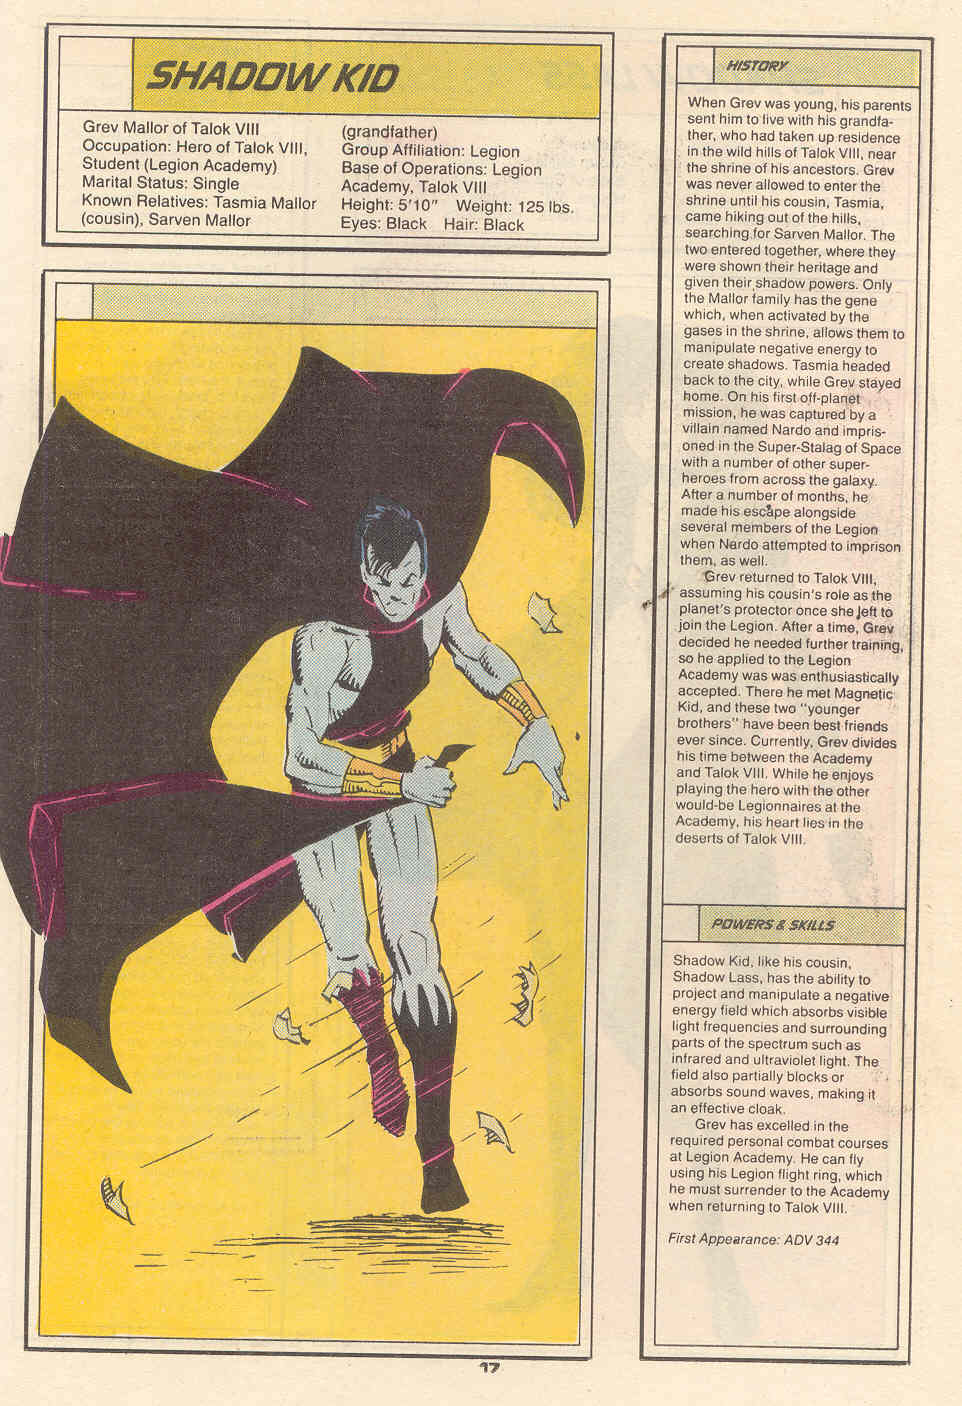 Shadow Kid by Chris Wozniak - Who's Who in the Legion of Super-Heroes #6